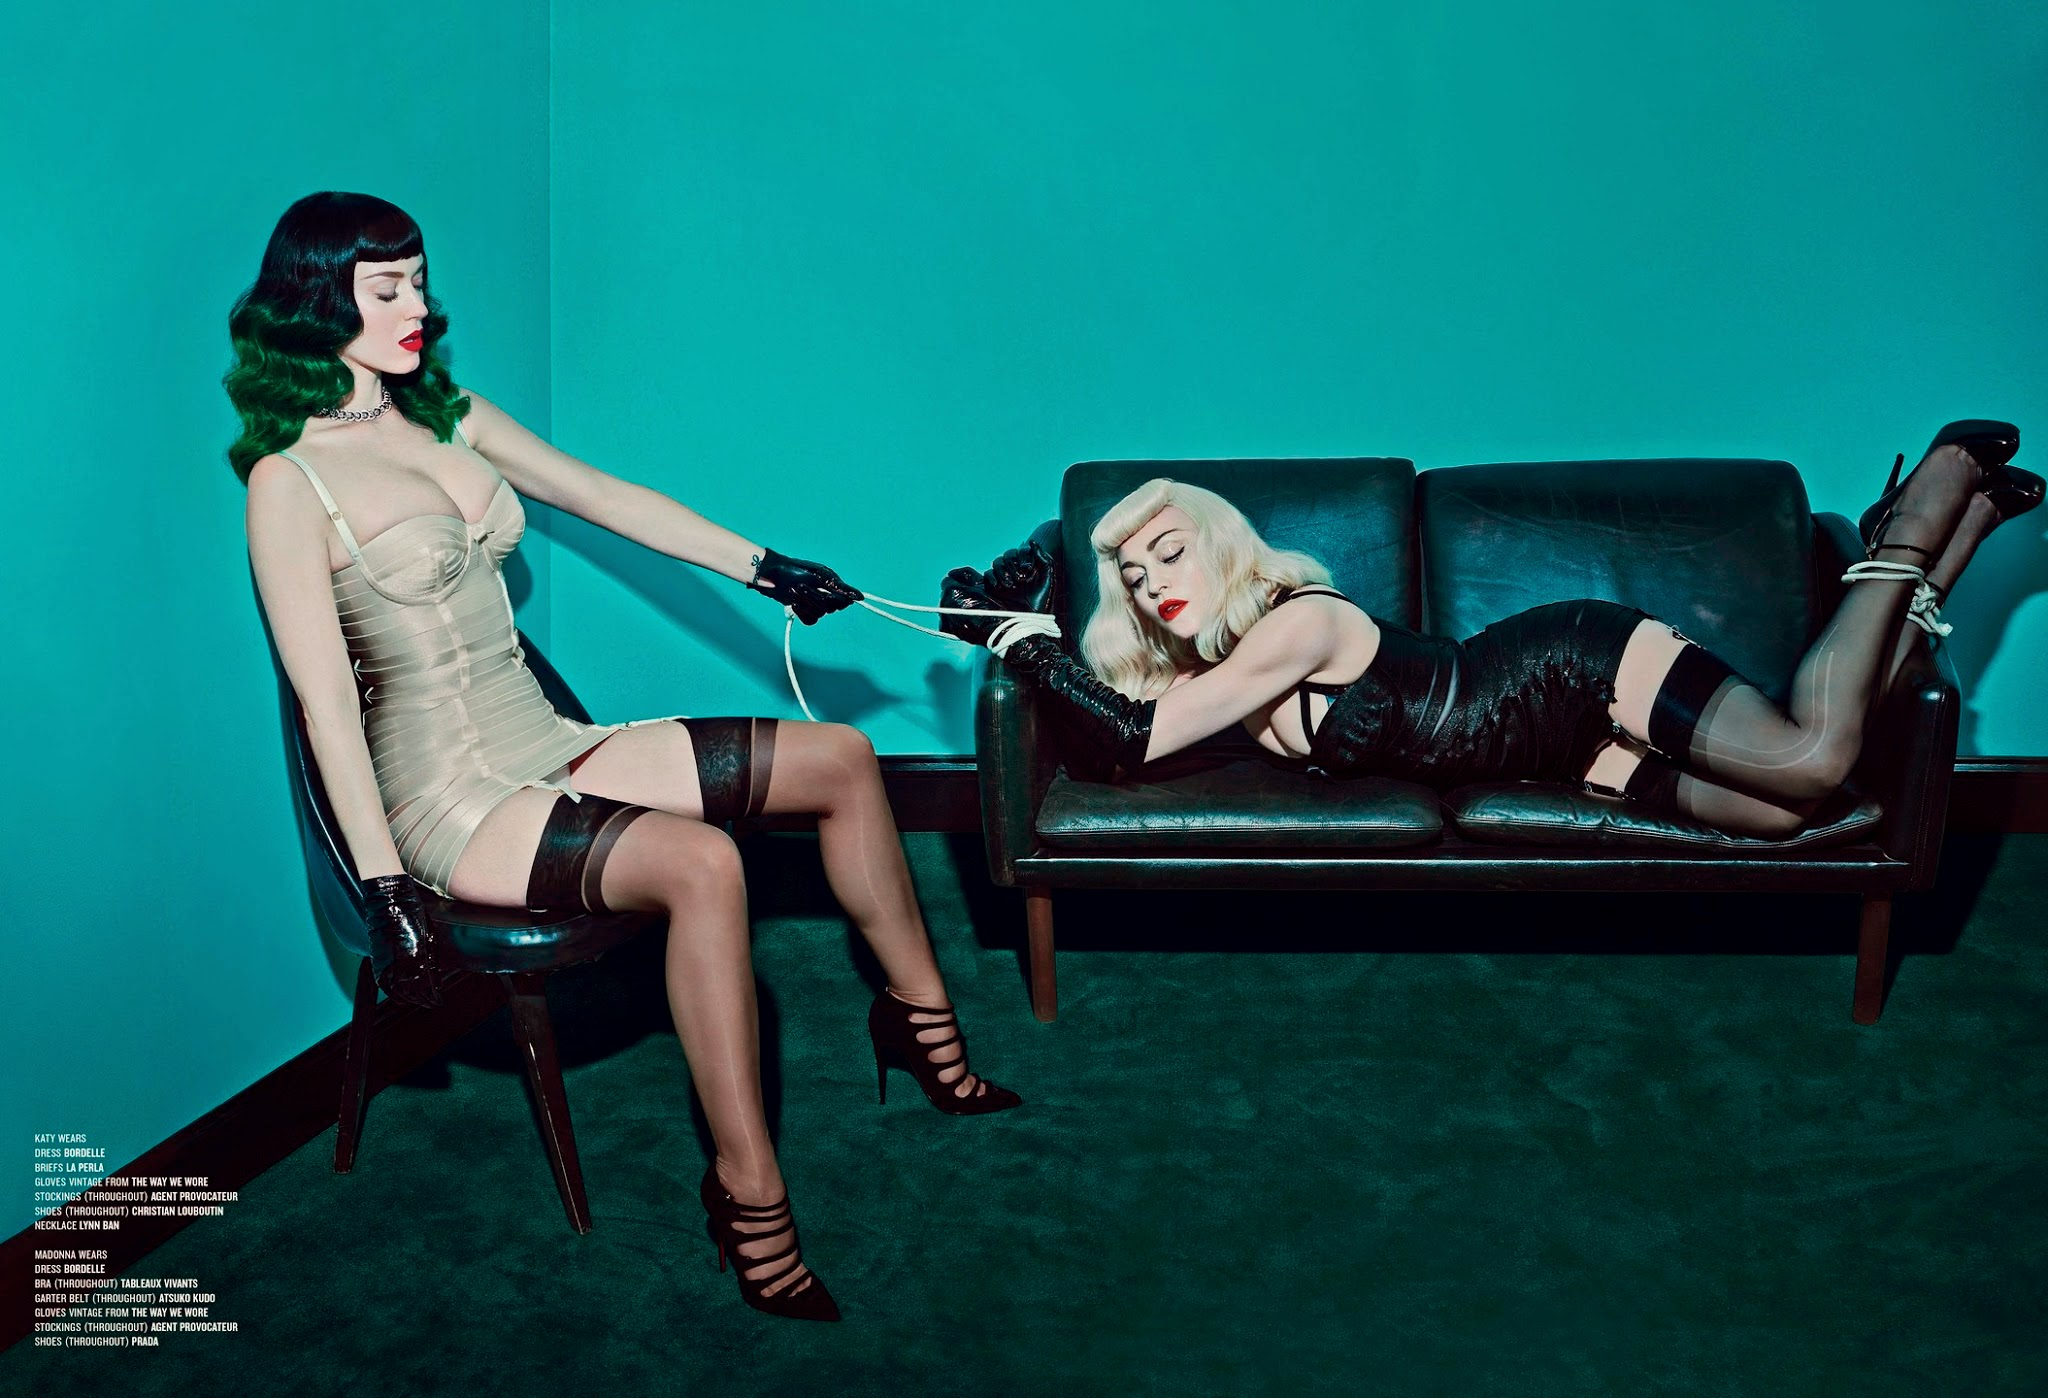 katy-perry-and-madonna-by-steven-klein-for-v-magazine-89-summer-2014-6